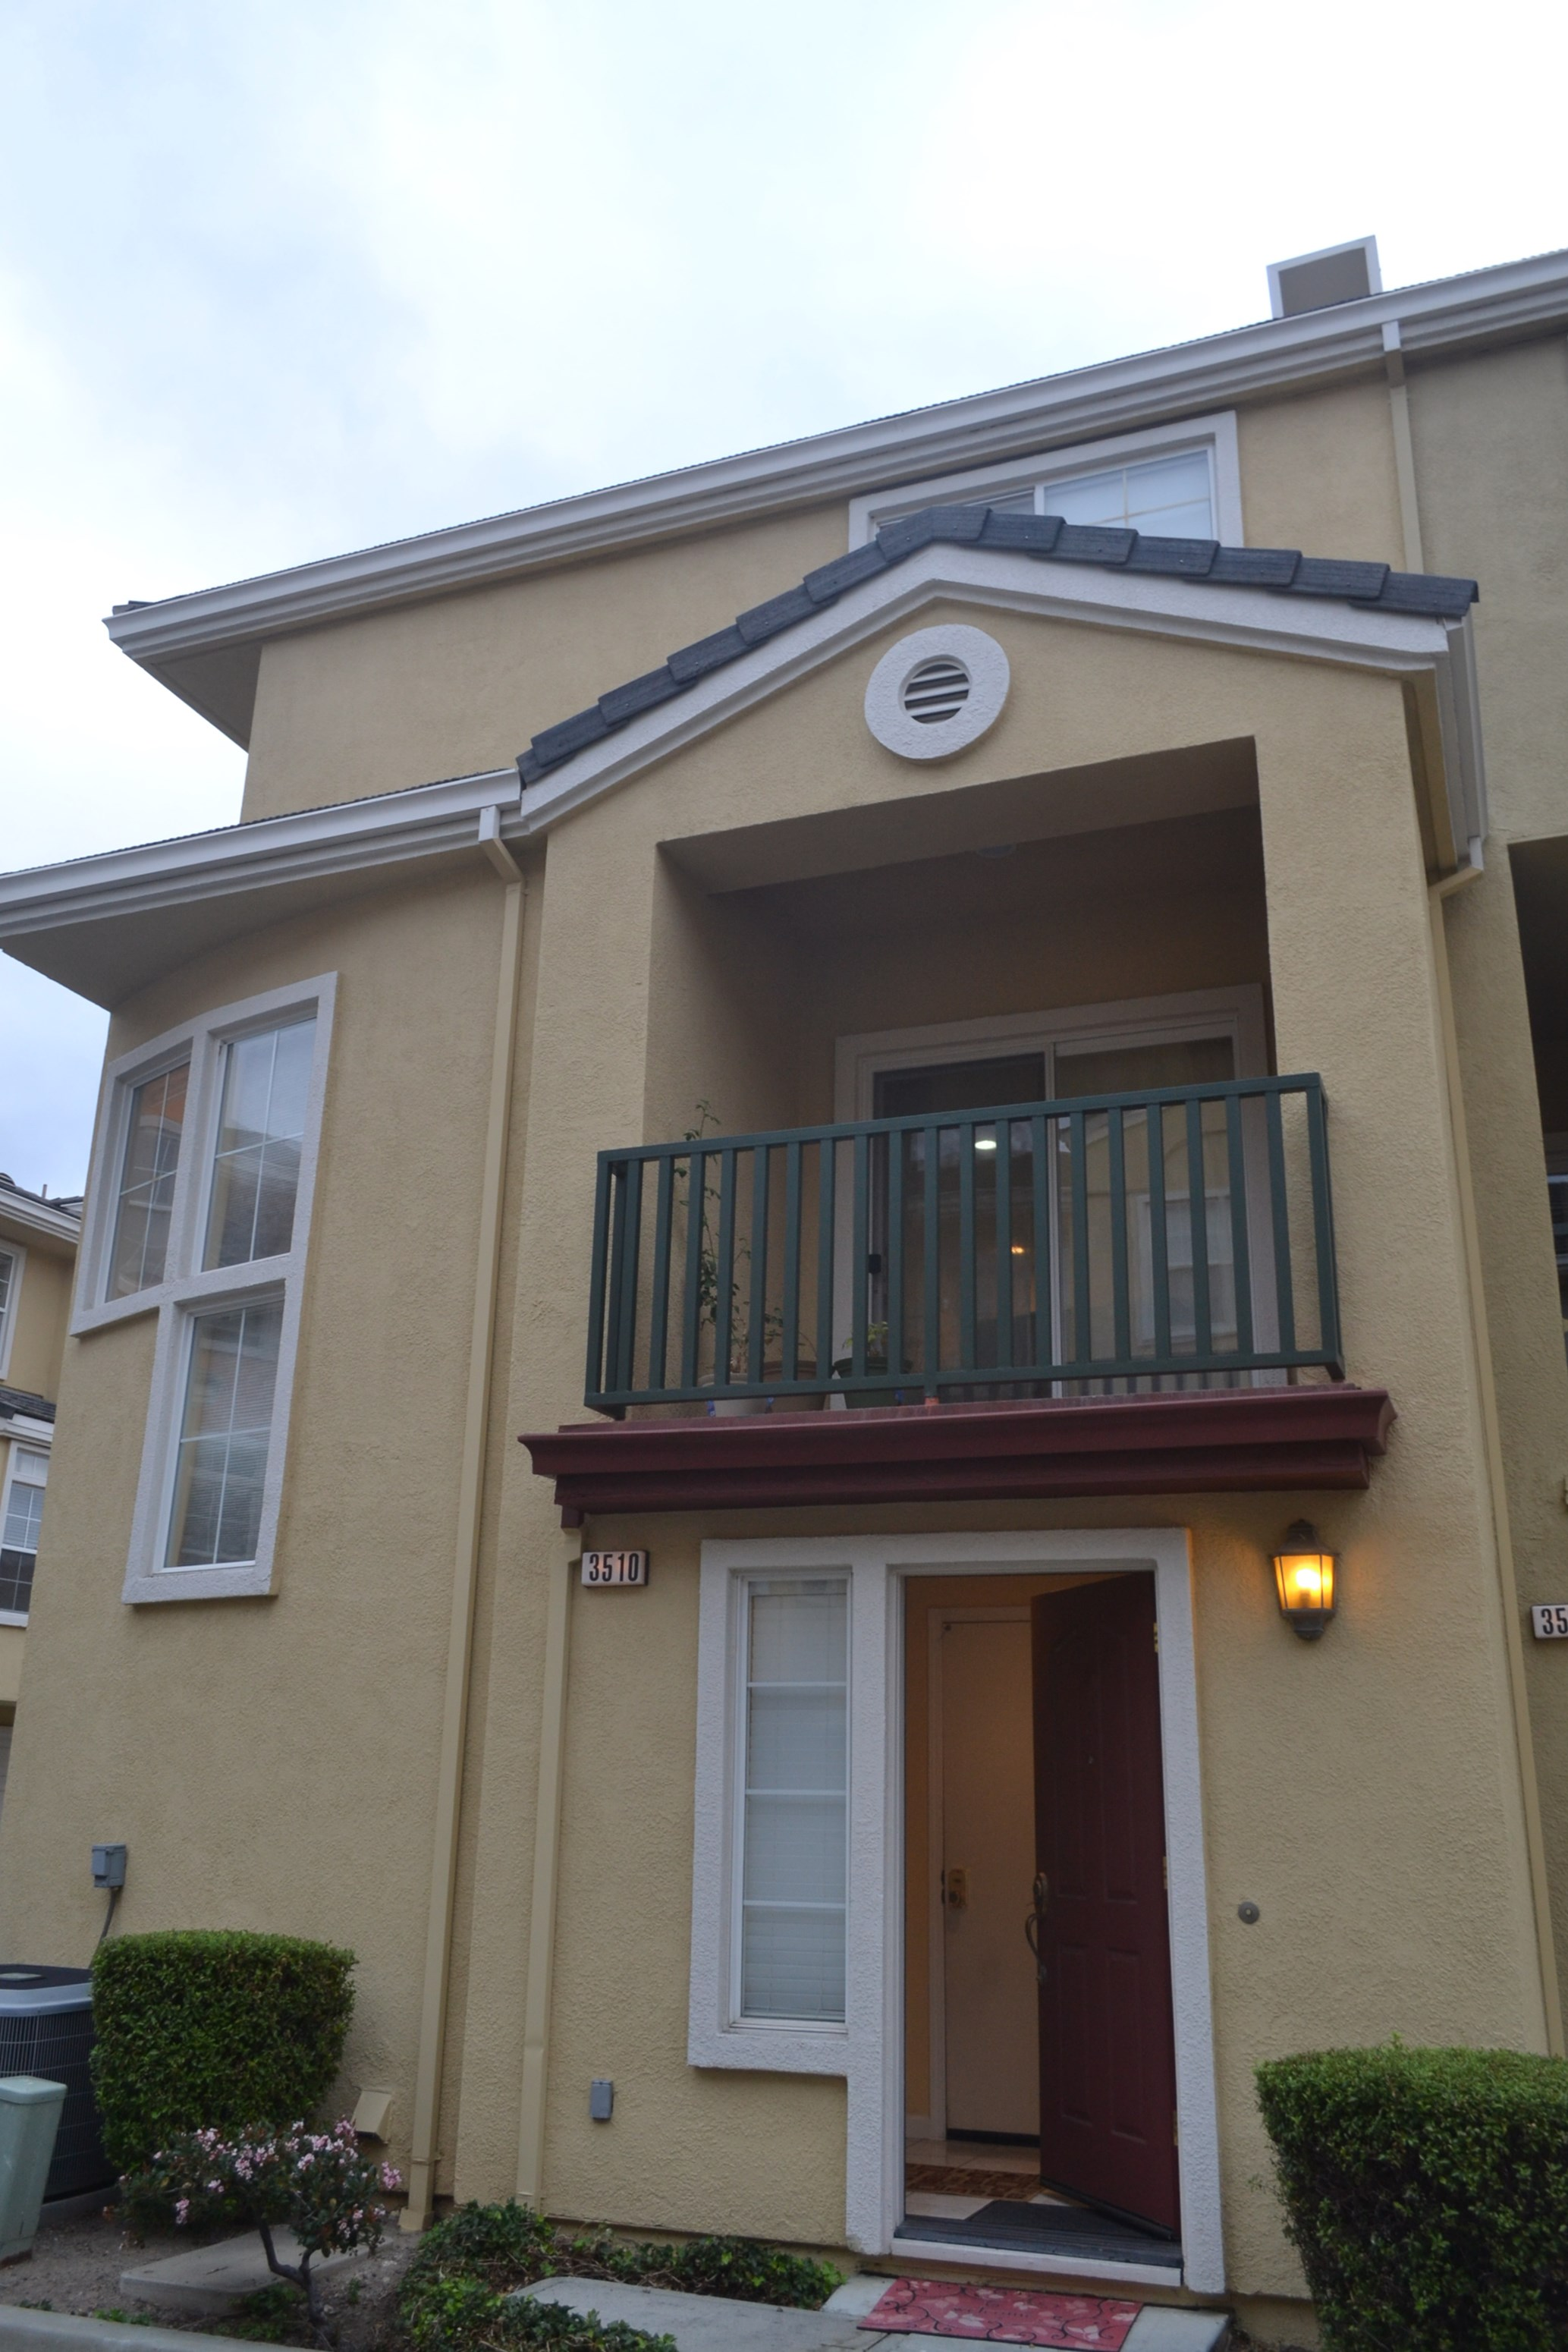 Tri Level Upgraded Townhome In Fremont Near Bart 2950 2br 1174sqft 2 Bhk Town House In